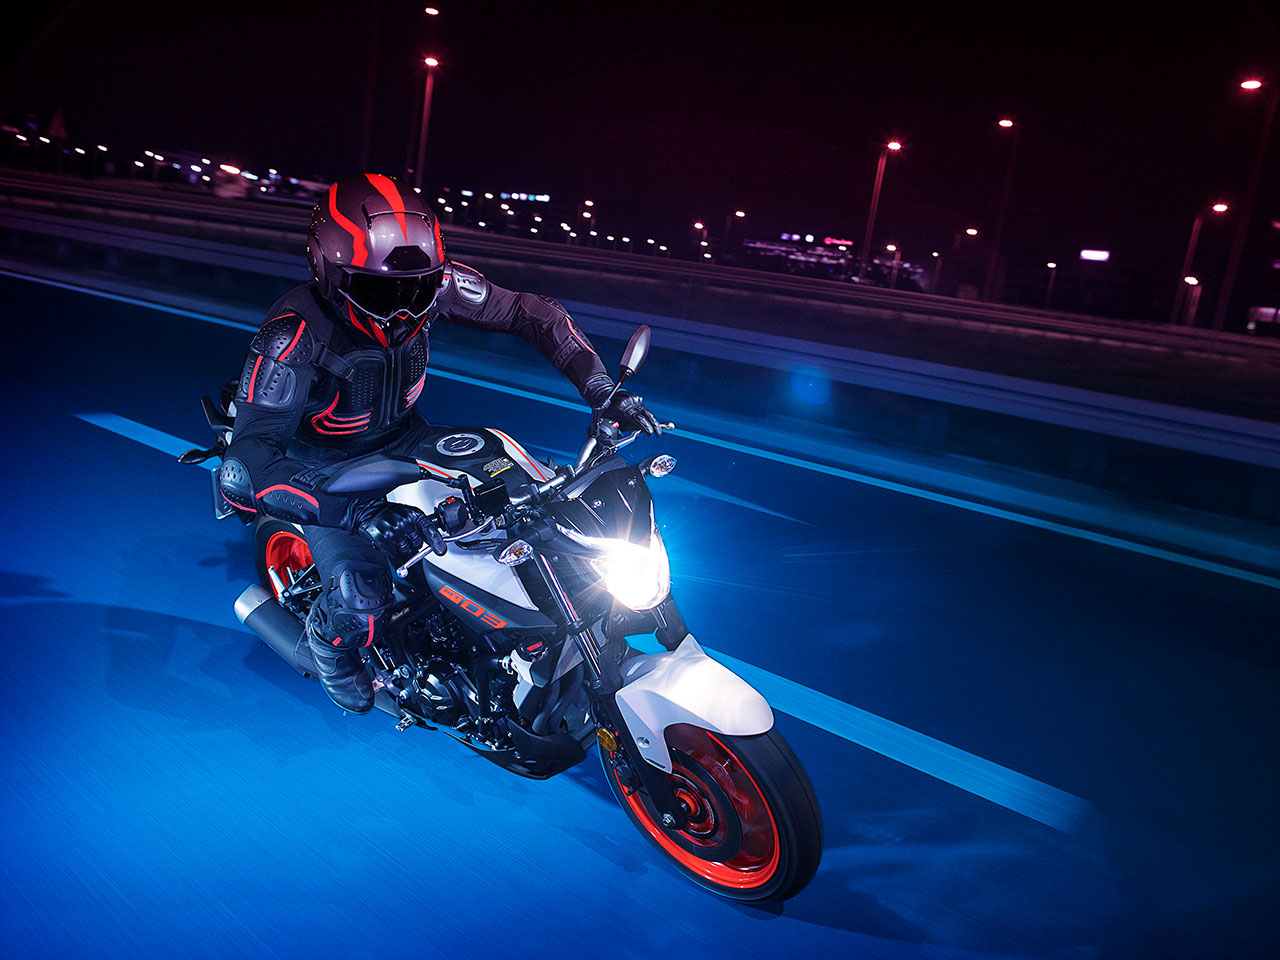 Yamaha MT-03 2019 in Ice Fluo colour, being ridden on a road